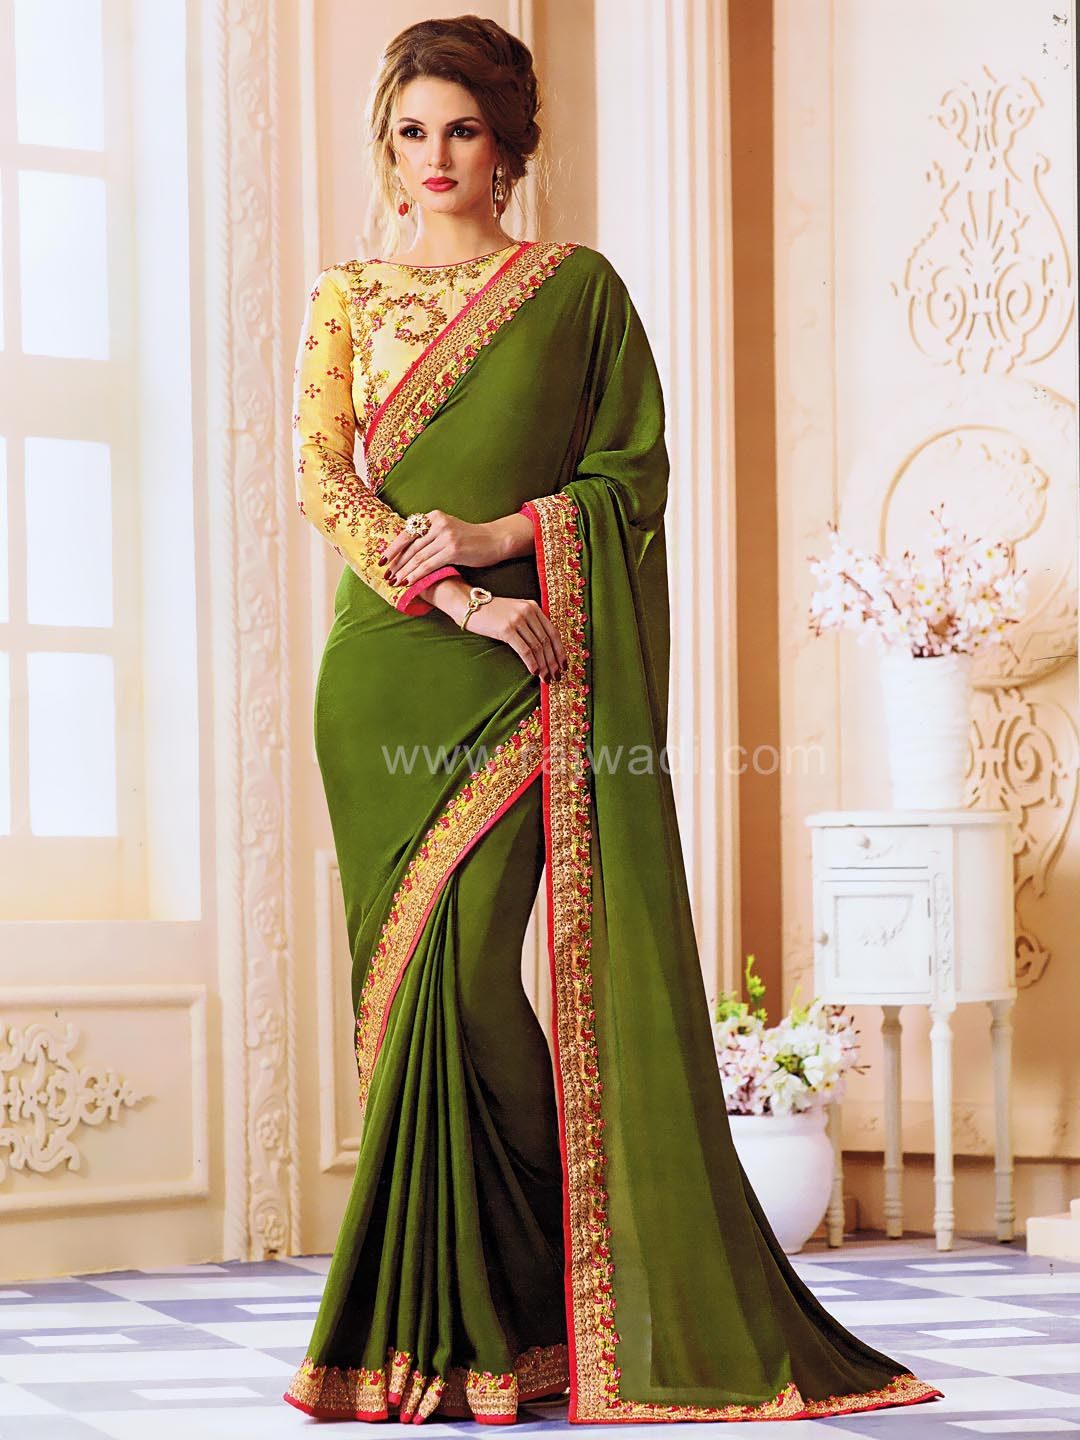 6ccfc7631e8a9d Olive green color saree with Border Work and contrast color embroidered  blouse  rajwadi  saree  ethnicwear  occasionwear  sareeswag  traditional